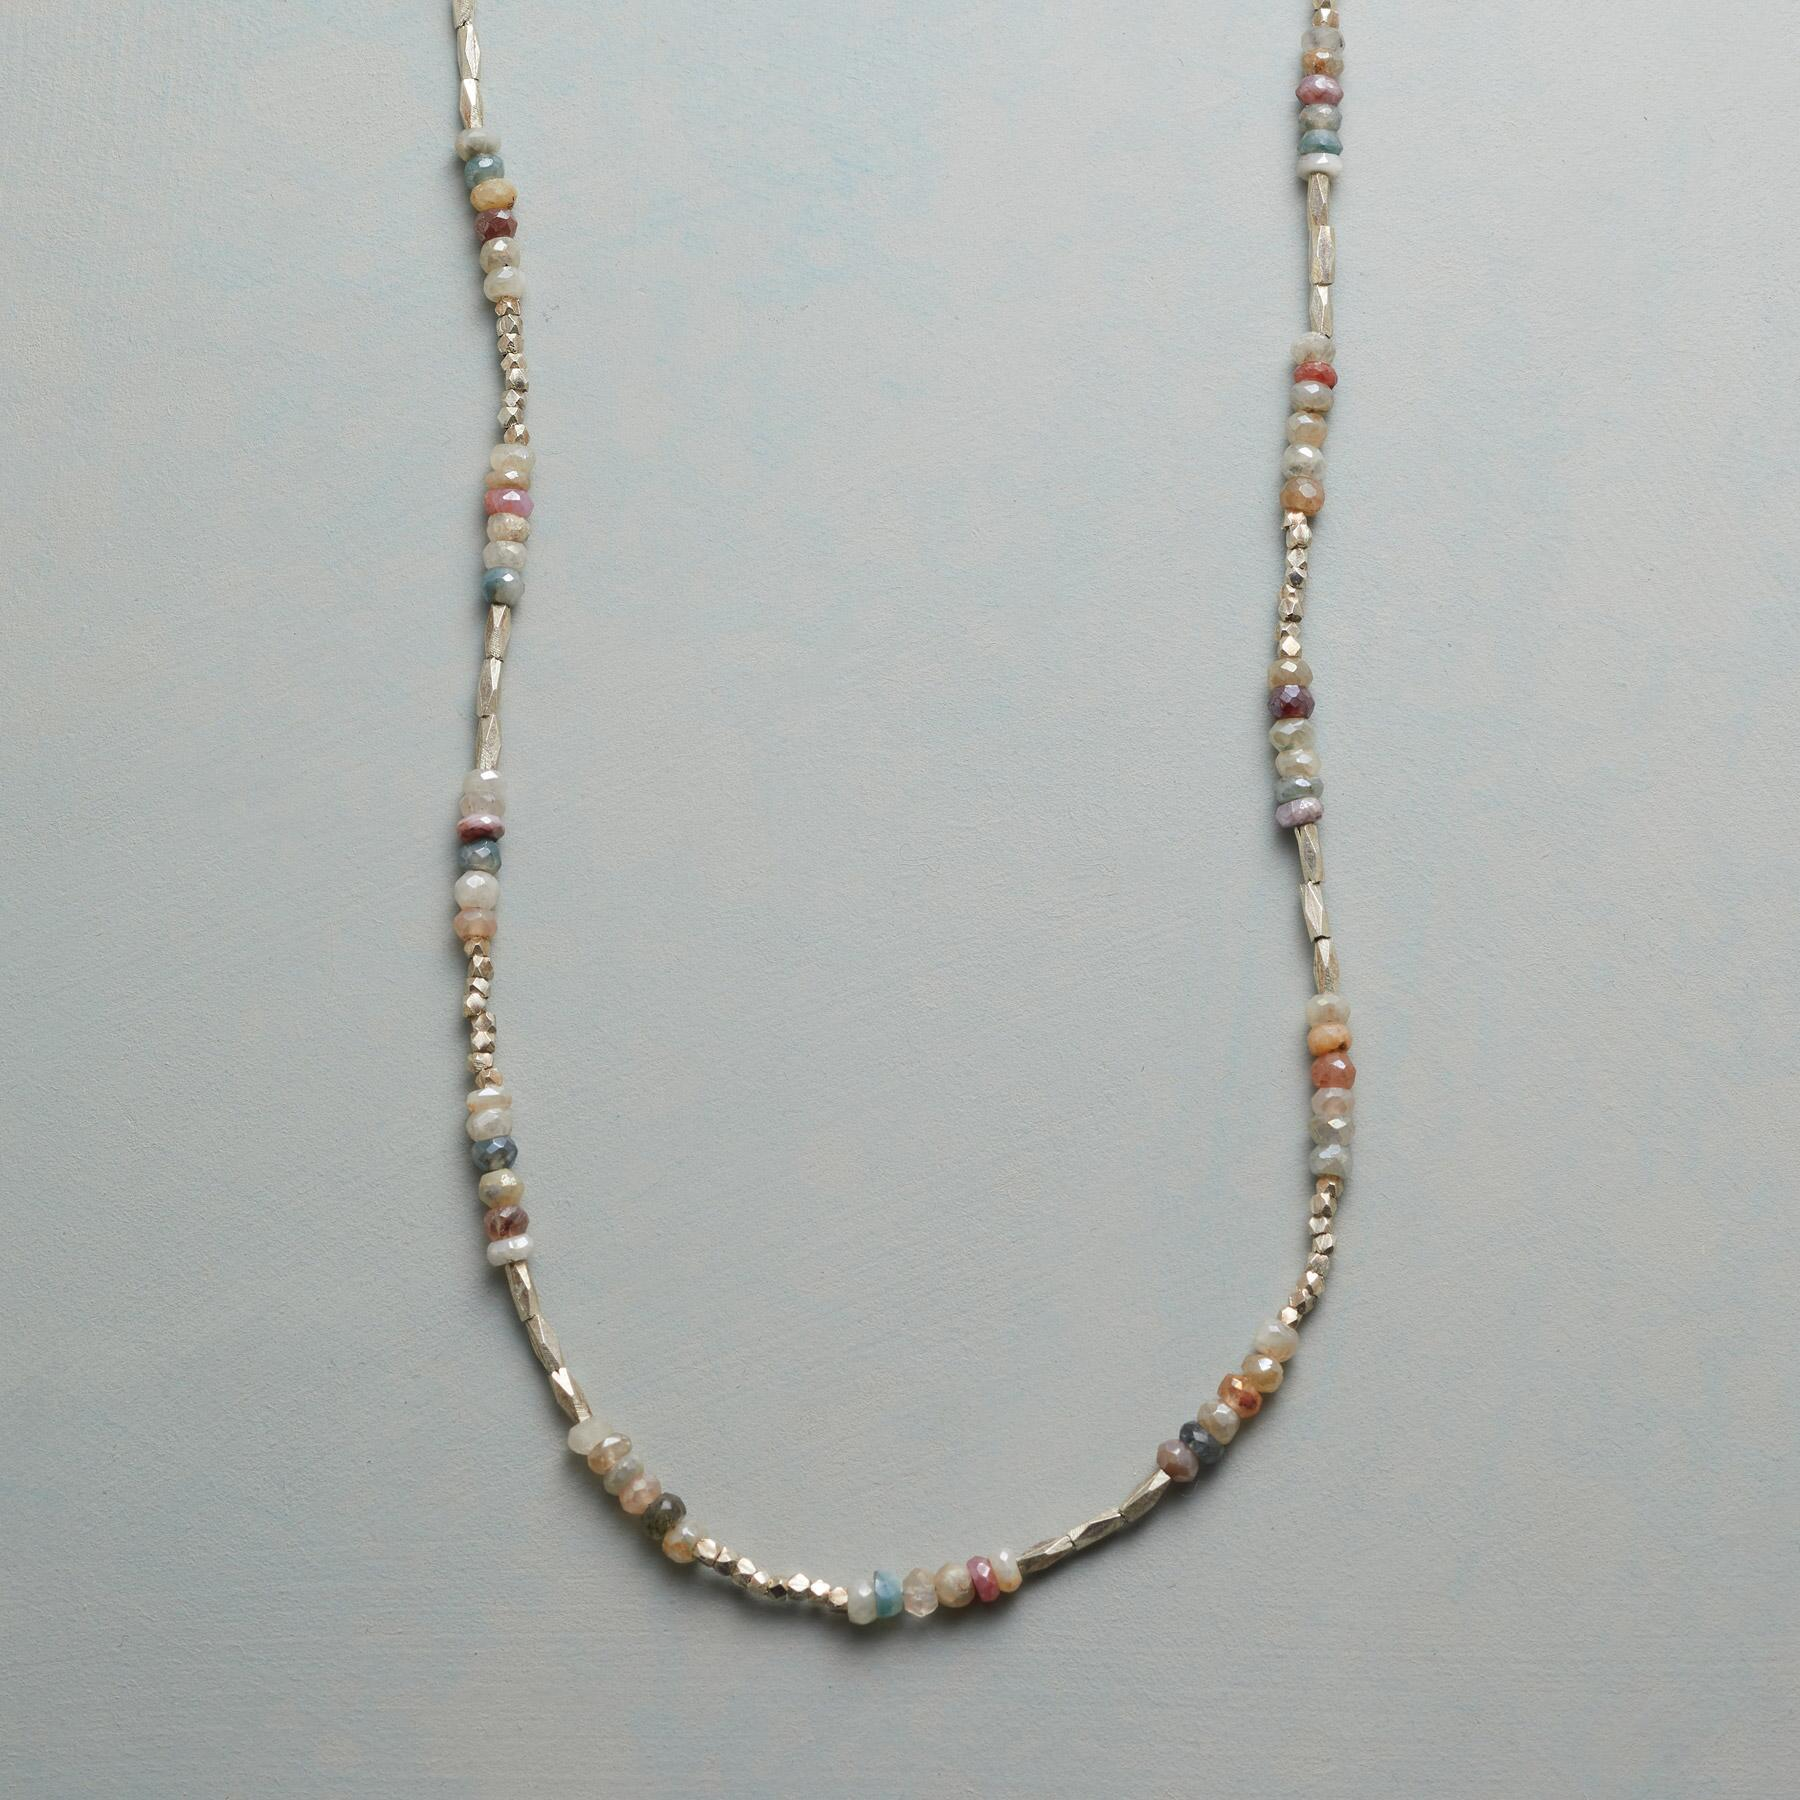 EXQUISITE LIGHT NECKLACE: View 1